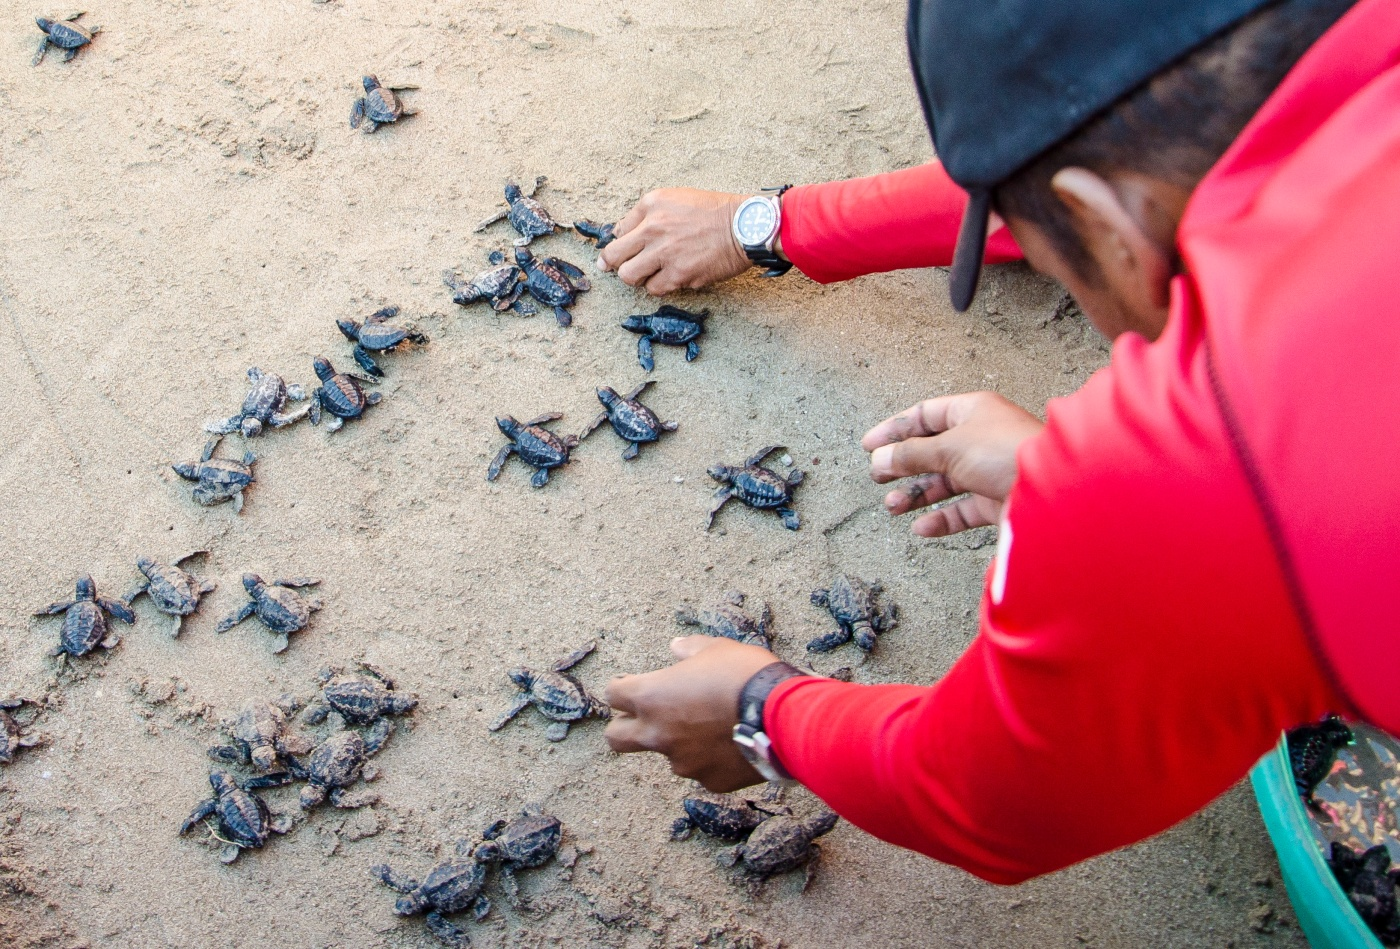 147 Olive Ridley sea turtle eggs hatched in Hamilo Coast and were released back to the sea by residents and members of Pico de Loro Cove.